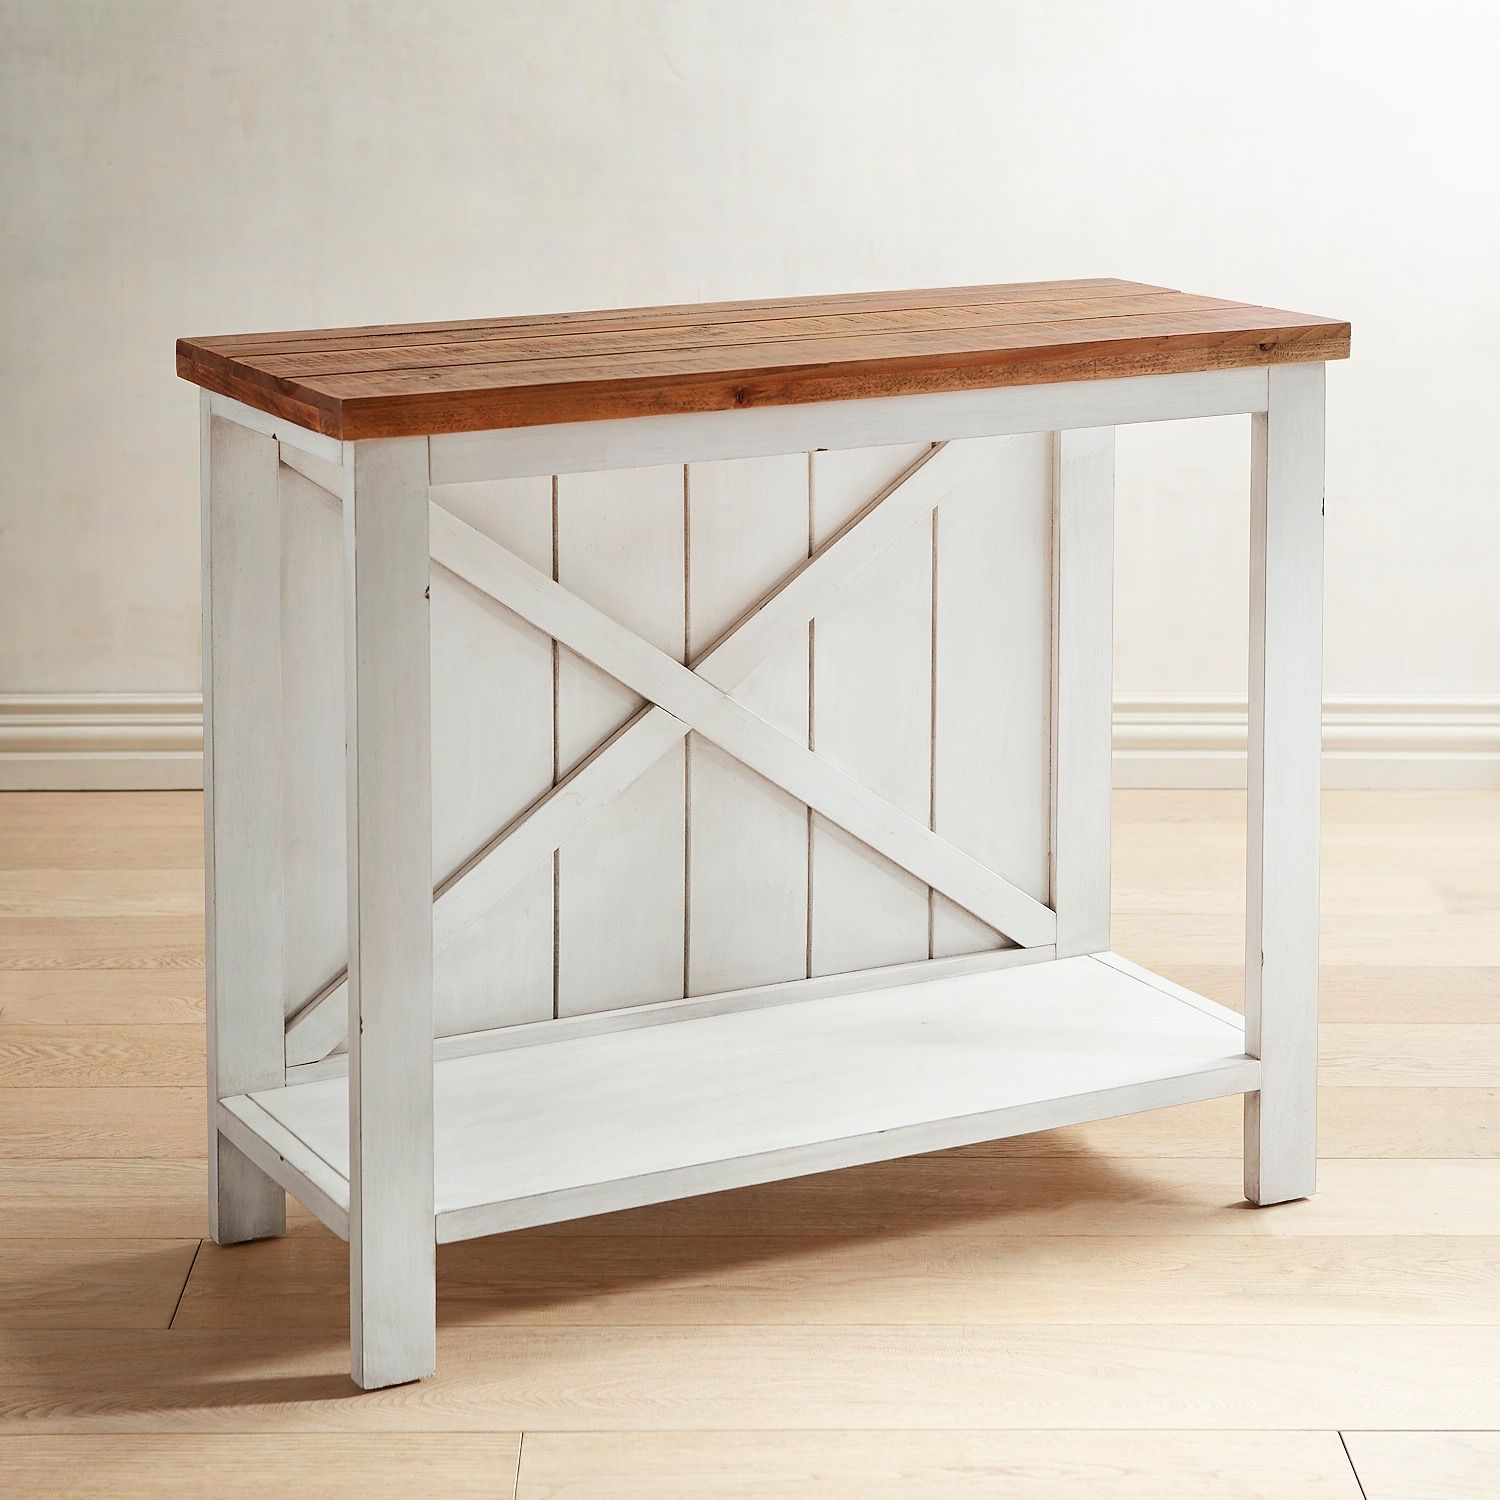 farmhouse white small console table pier imports one anywhere accent wrought iron patio dining garden storage units verizon ellipsis drop side ikea tops currey and company